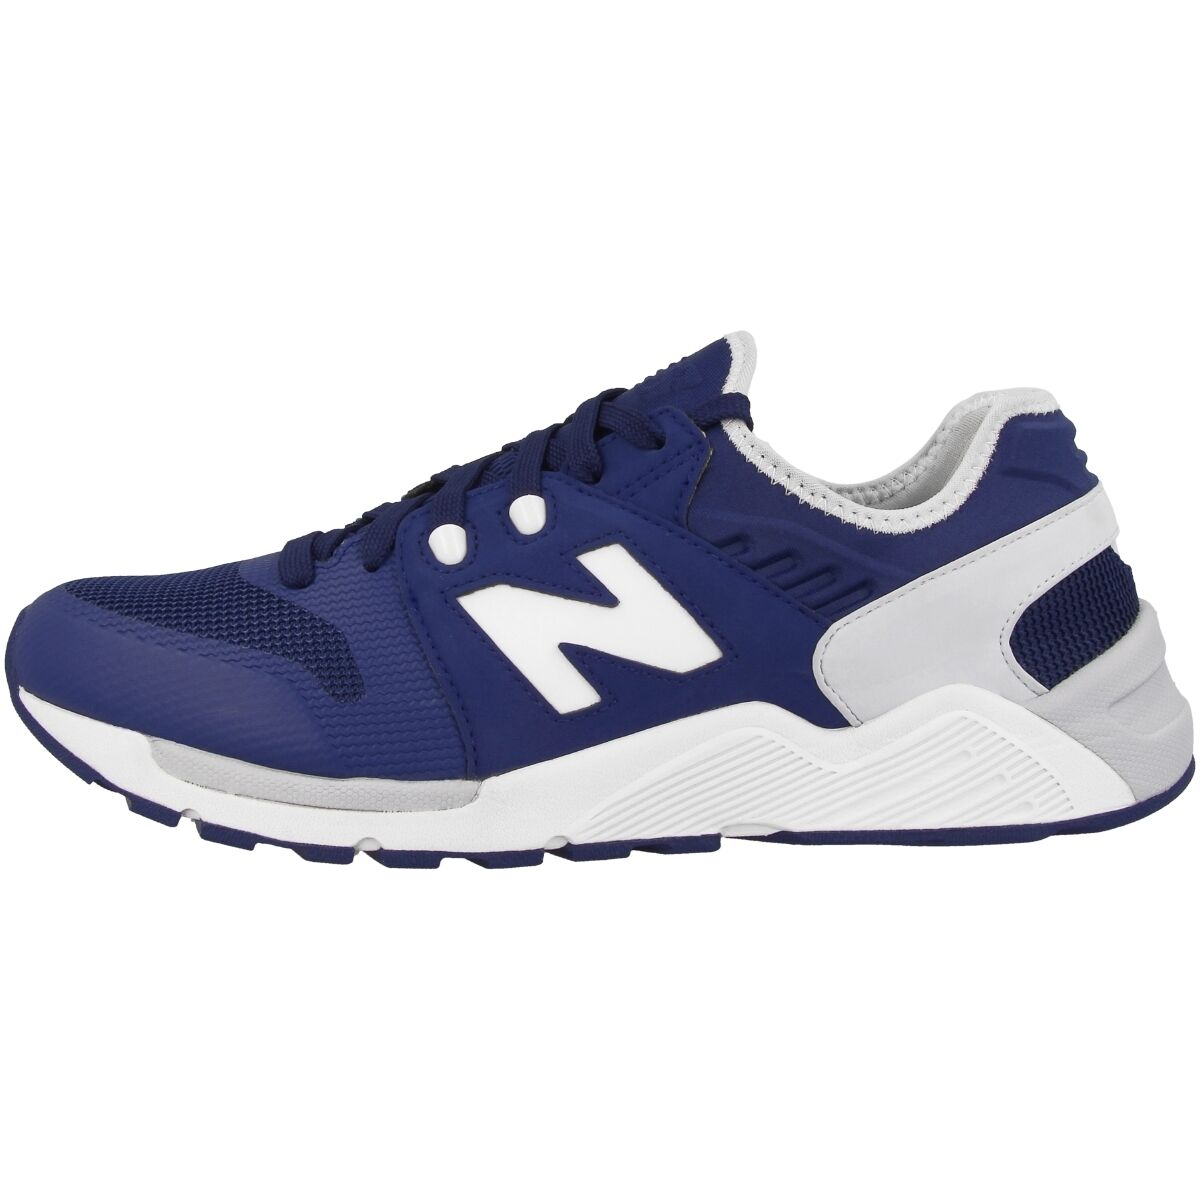 New balance ml 009 PHB zapatos Navy light grey ml009phb ocio cortos MD 1500